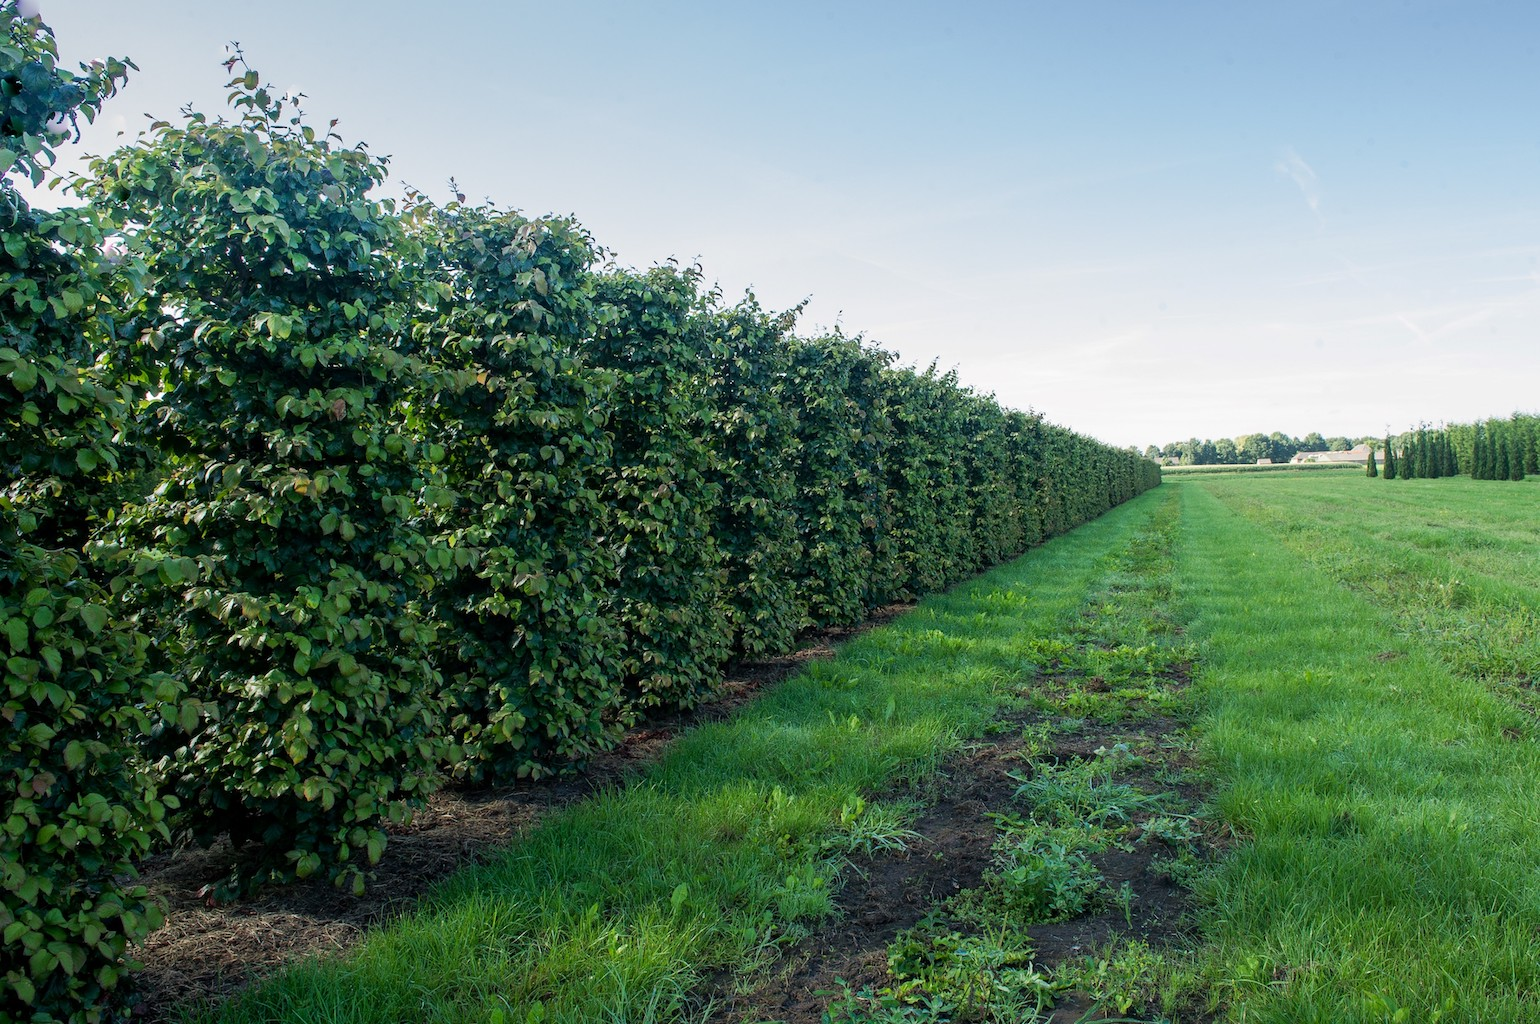 Parrotia persica instant hedge plants in the field